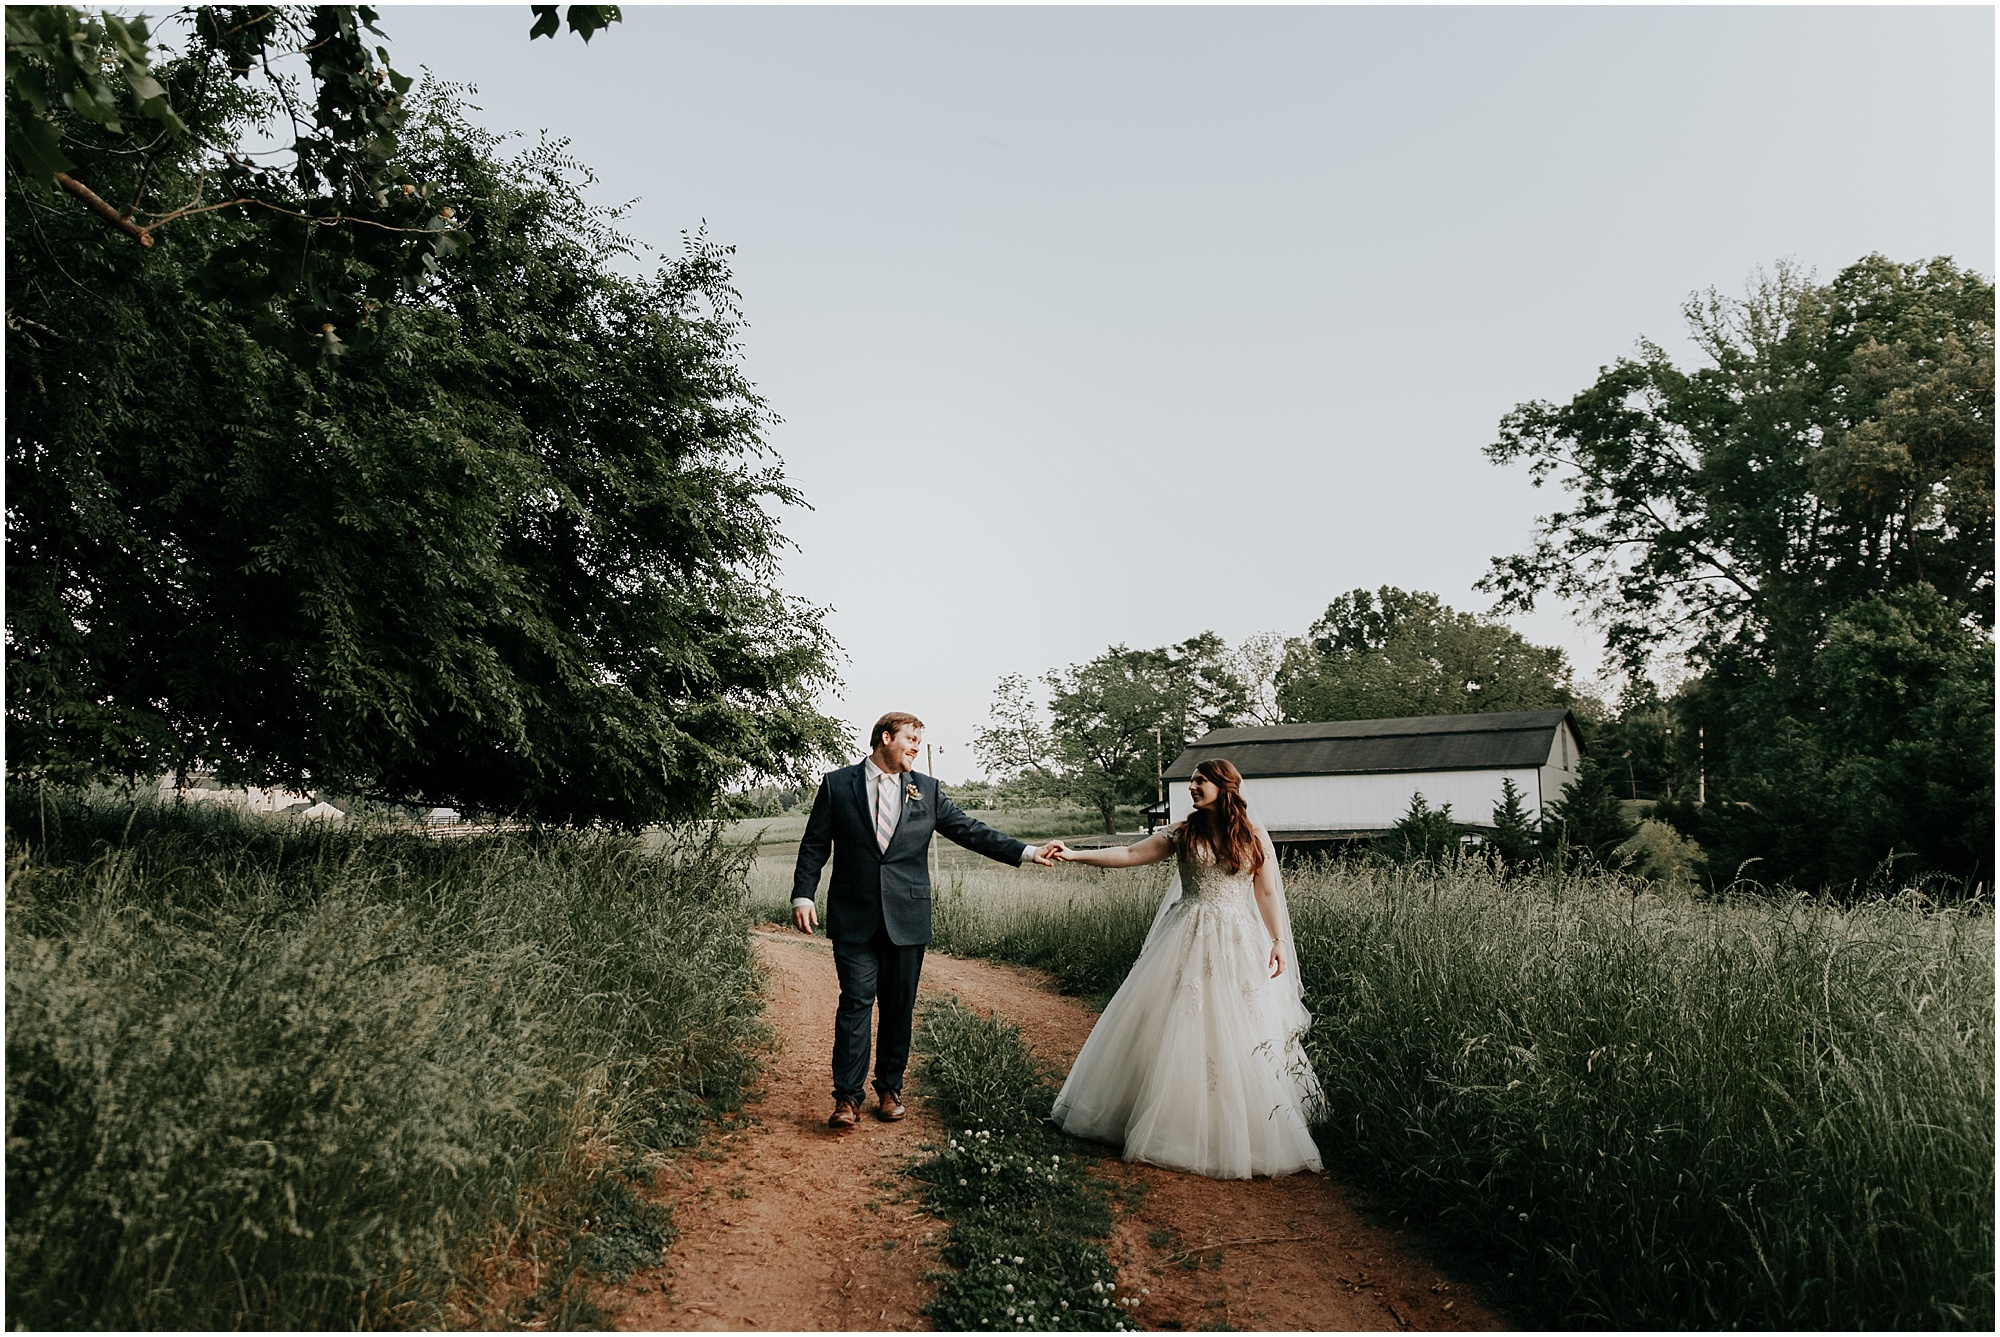 Romantic Little River Farms Wedding Photographer in Atlanta, GA